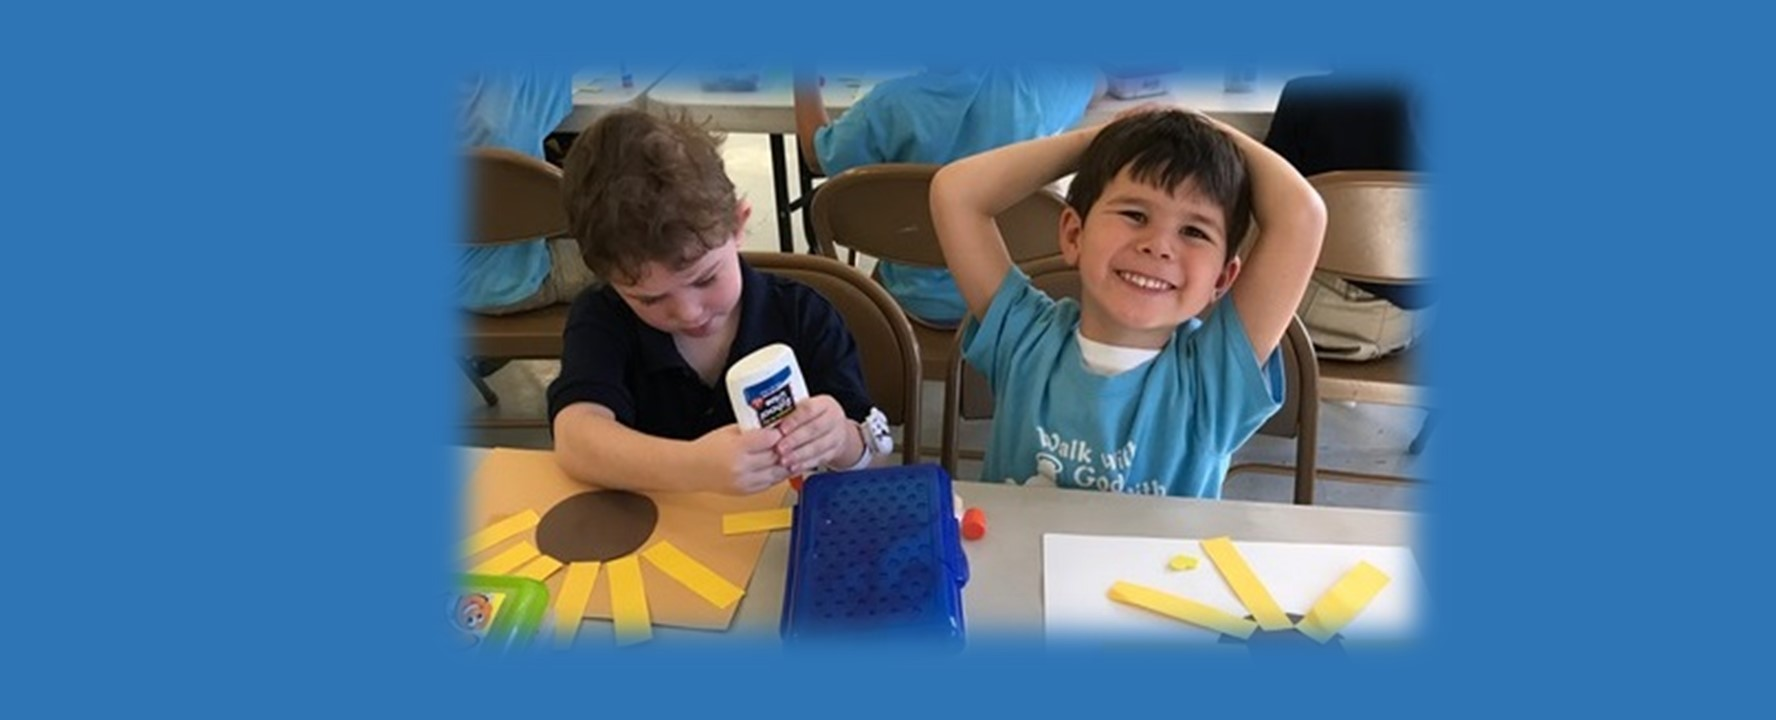 St Paul Lutheran School Catonsville Early Childhood Center student gluing strips of paper for a picture as another student smiles